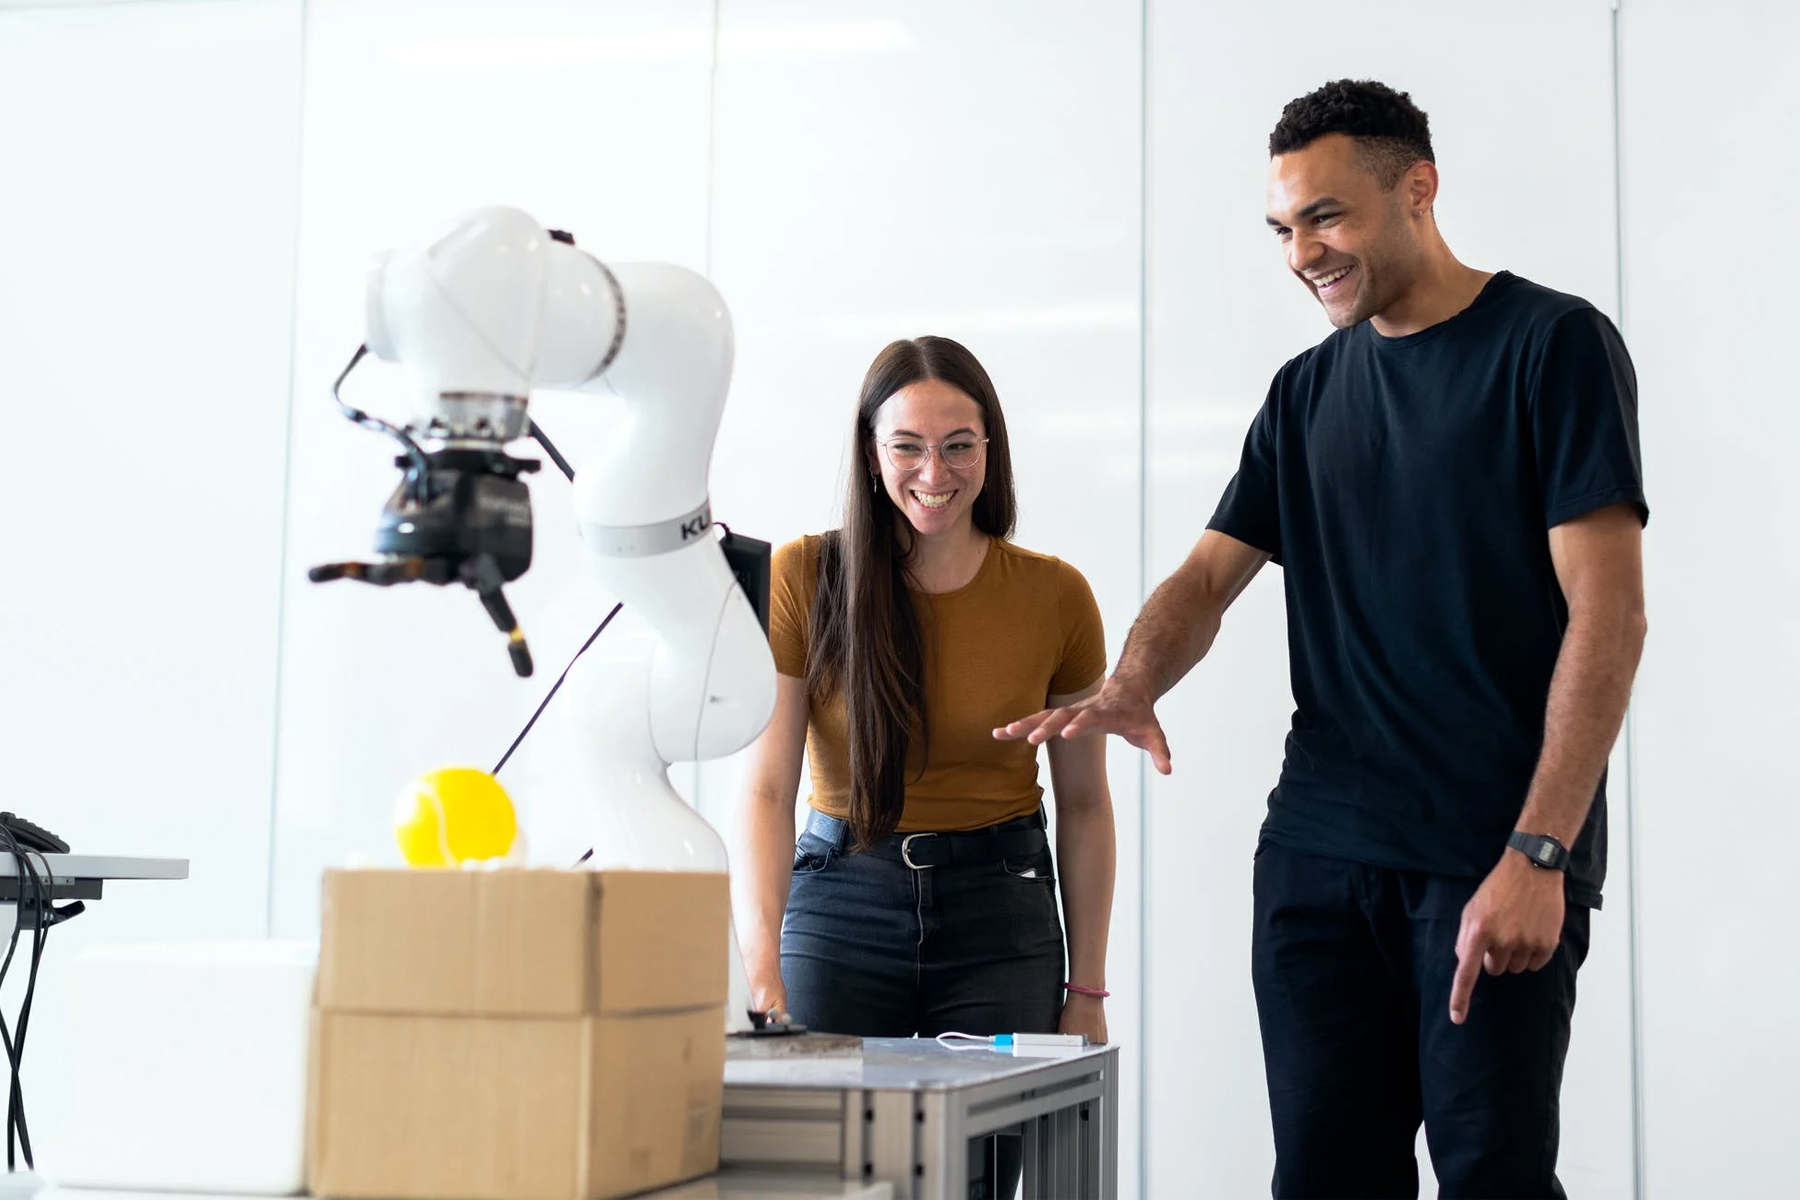 employees looking at a robot as it does a process